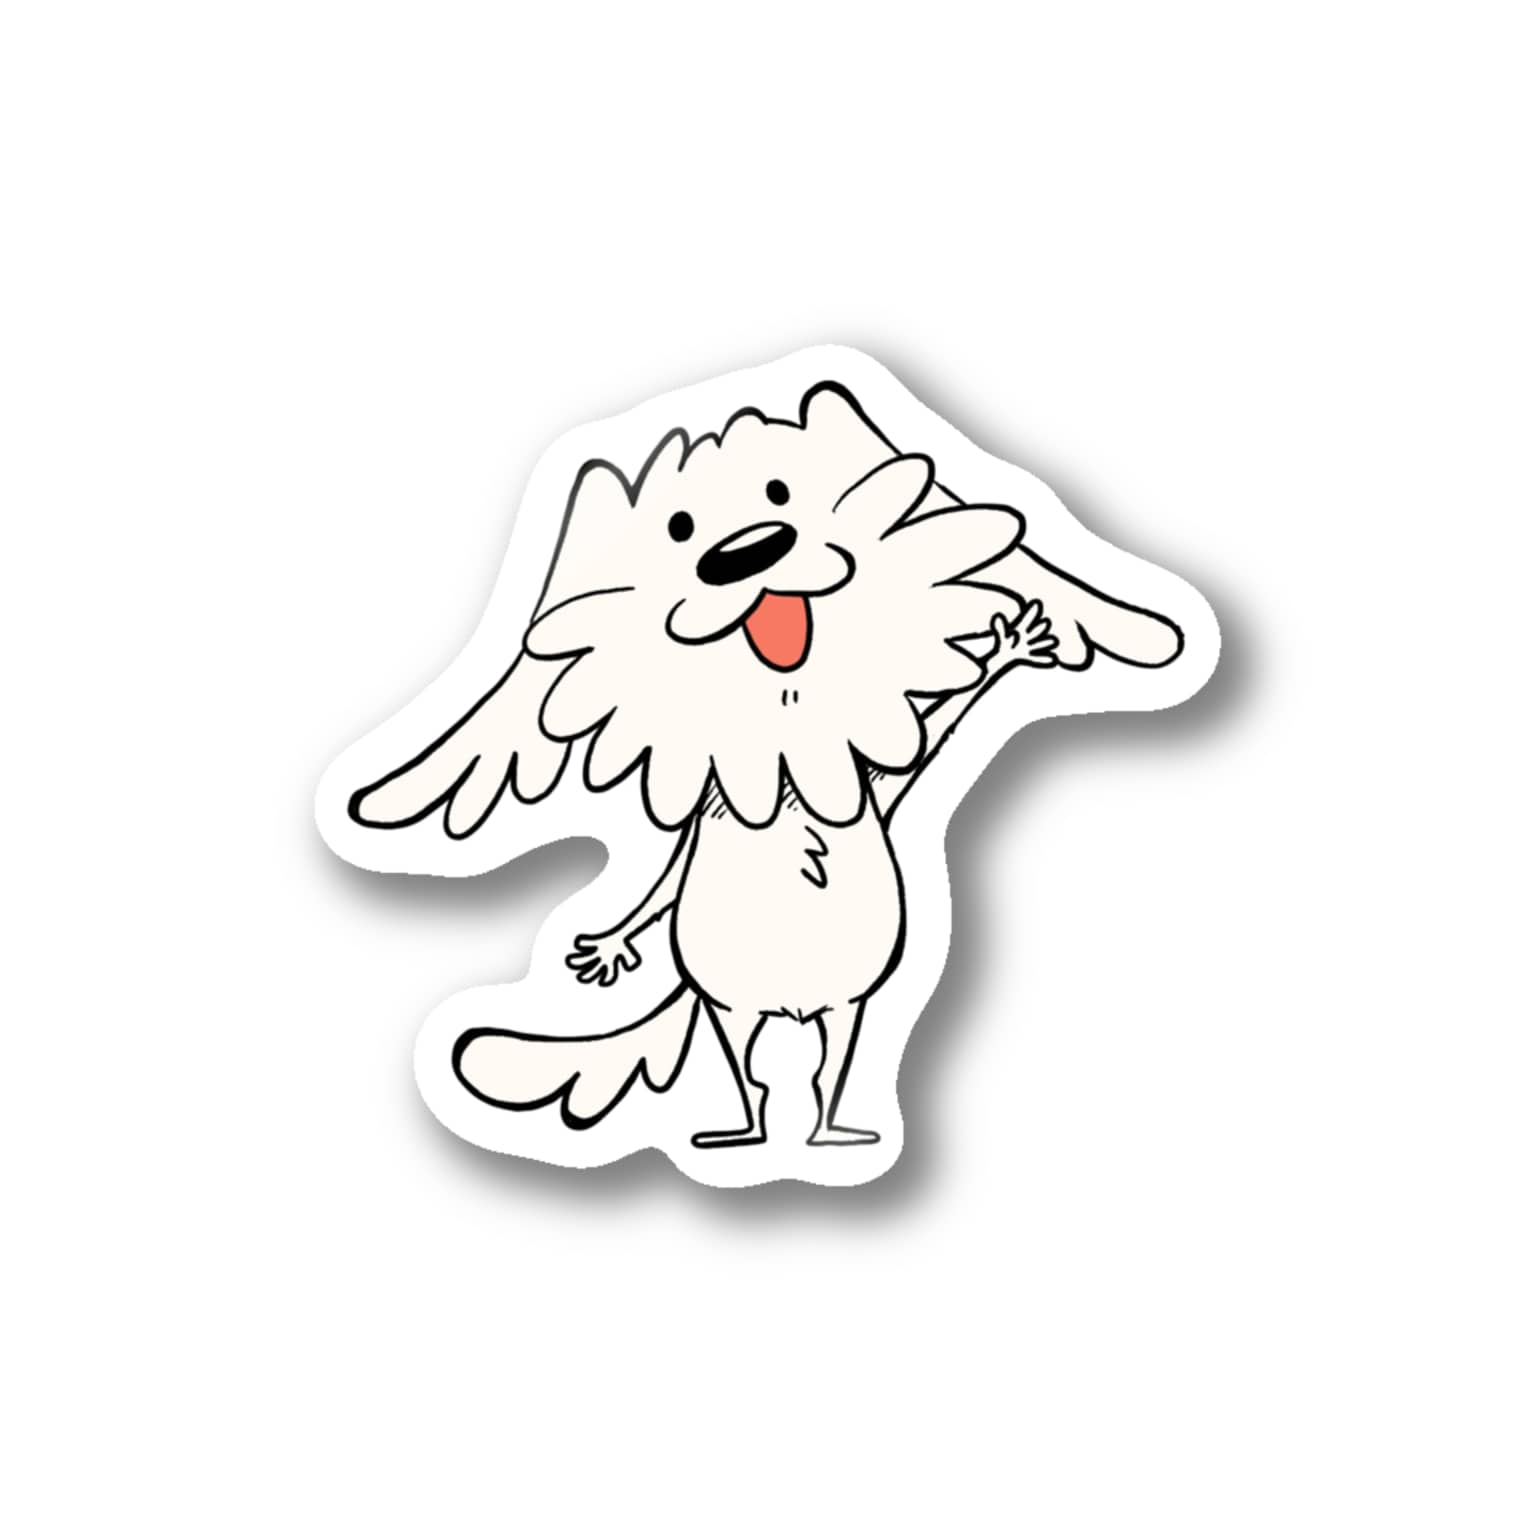 -testsite-のJOLLY DOG Stickers